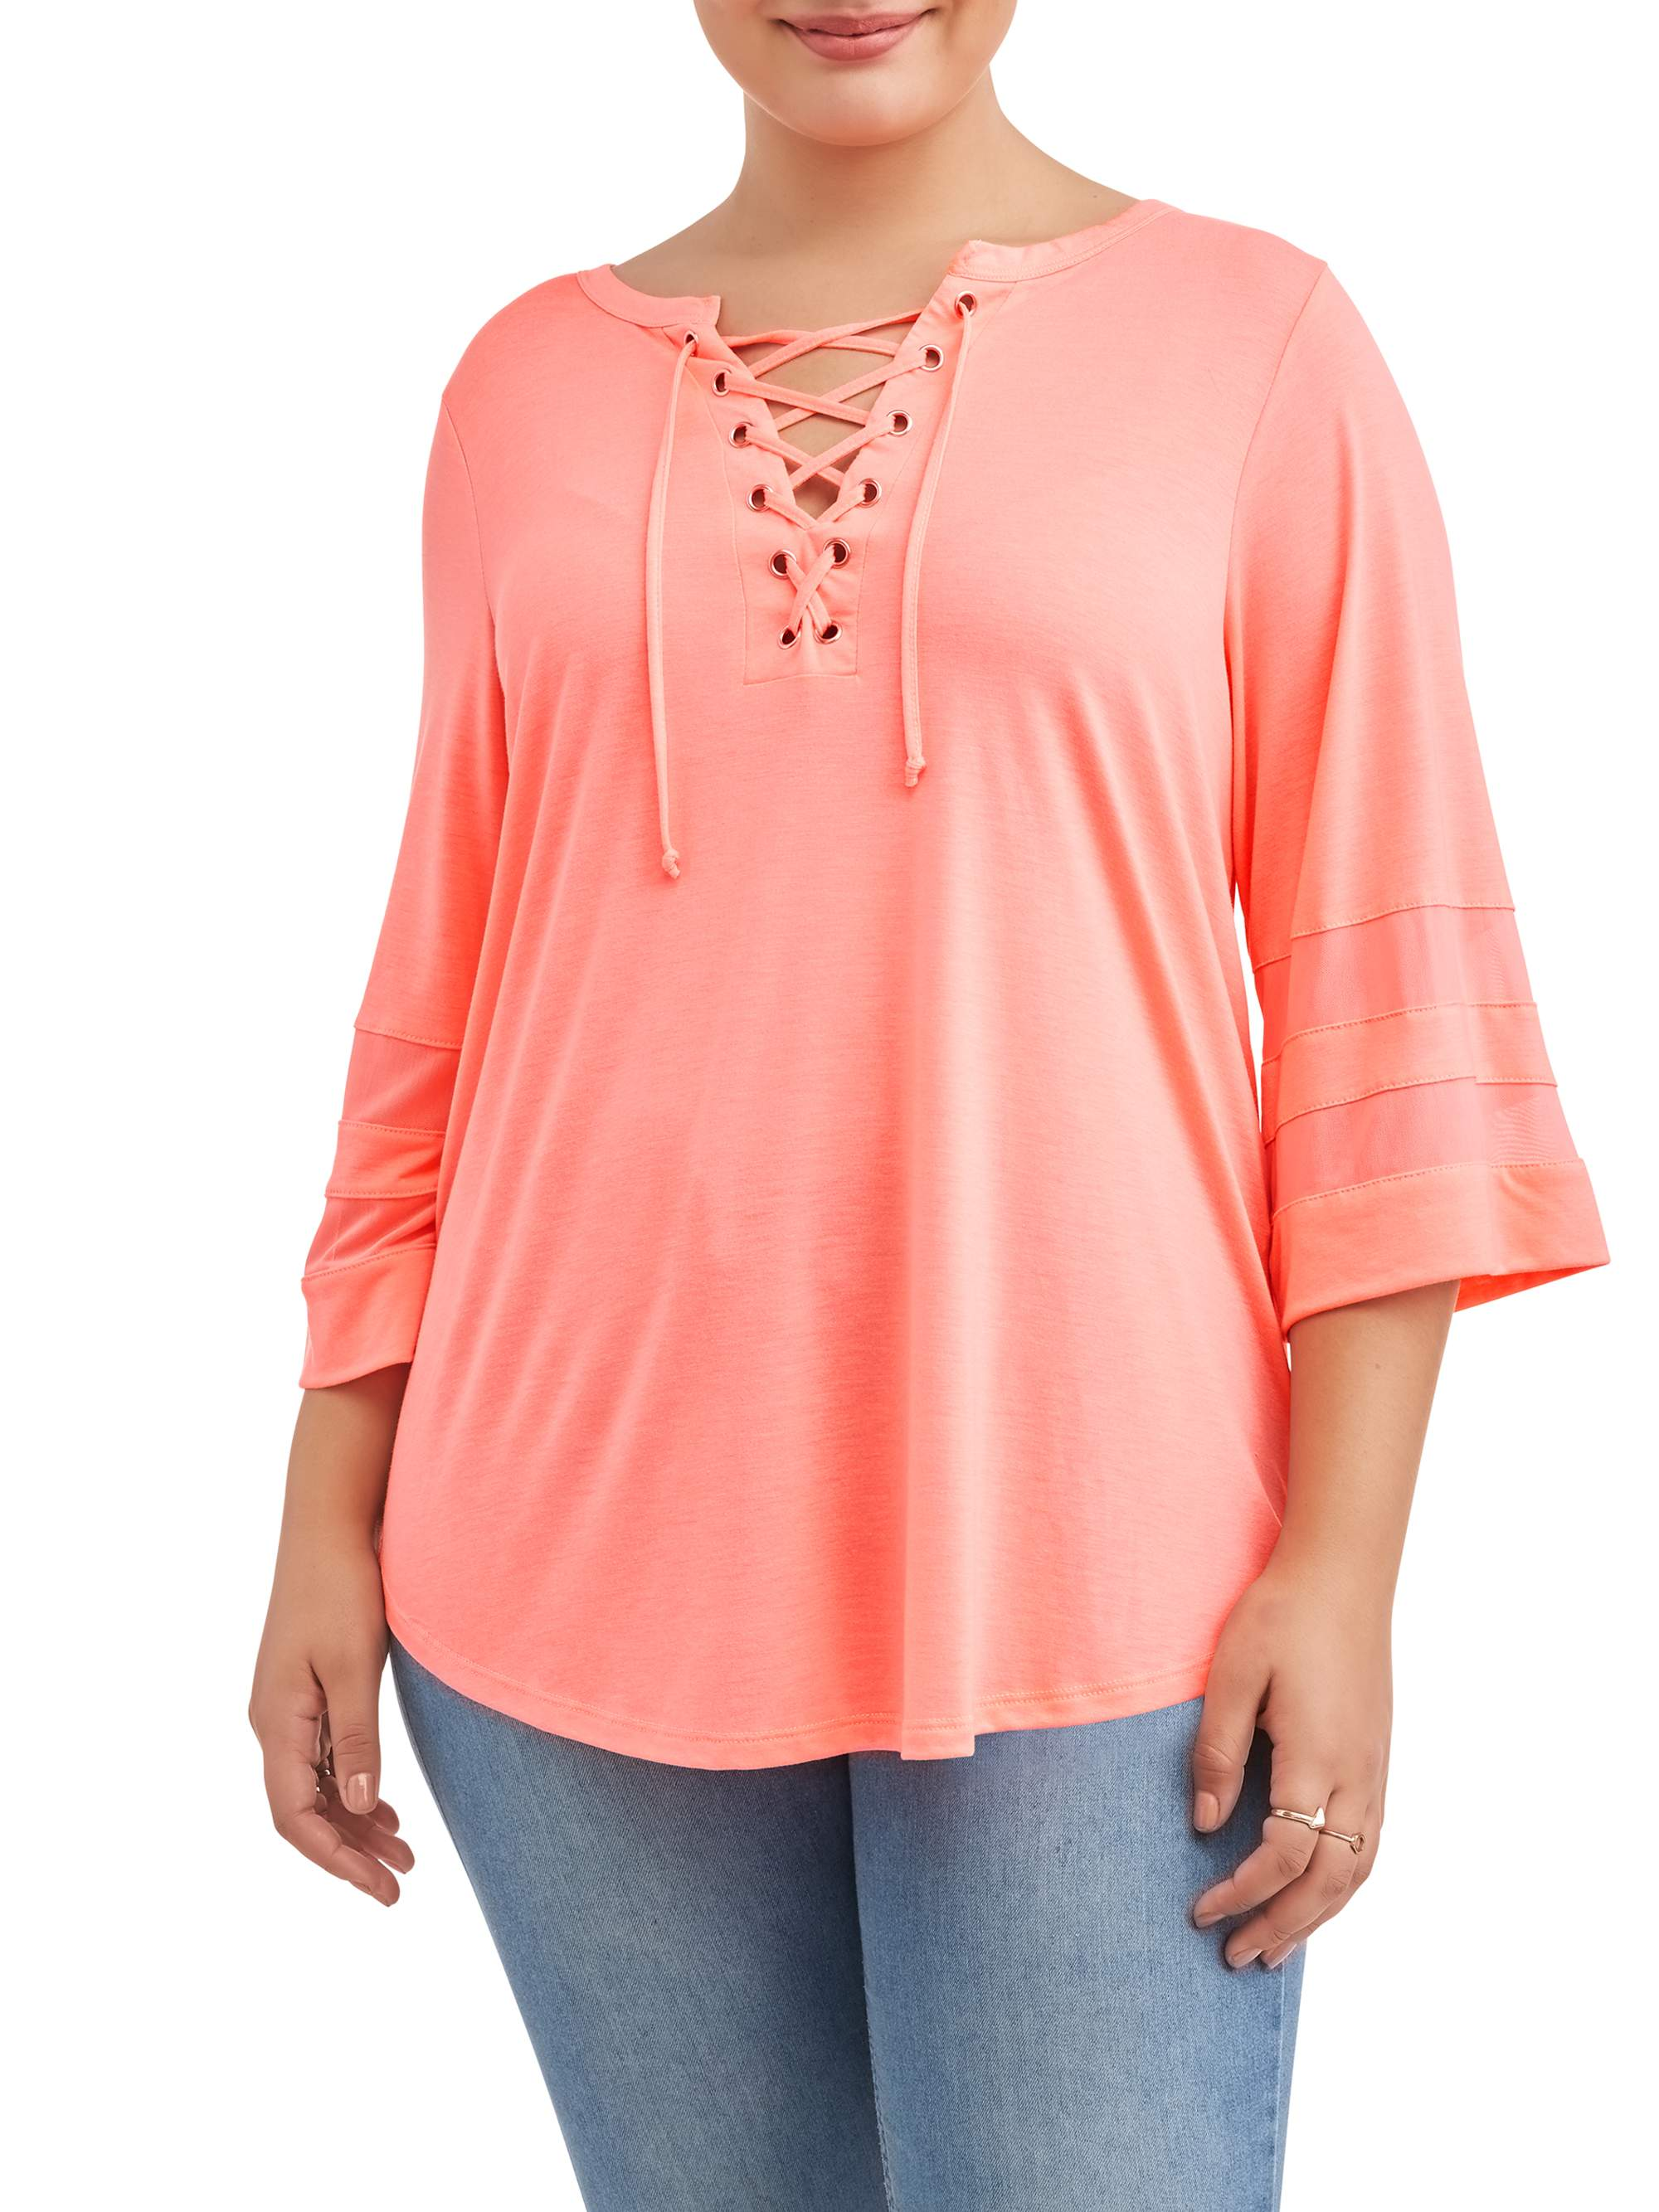 Women's Plus Size Lace Up Shirt Tail Top with Mesh Sleeve Inserts